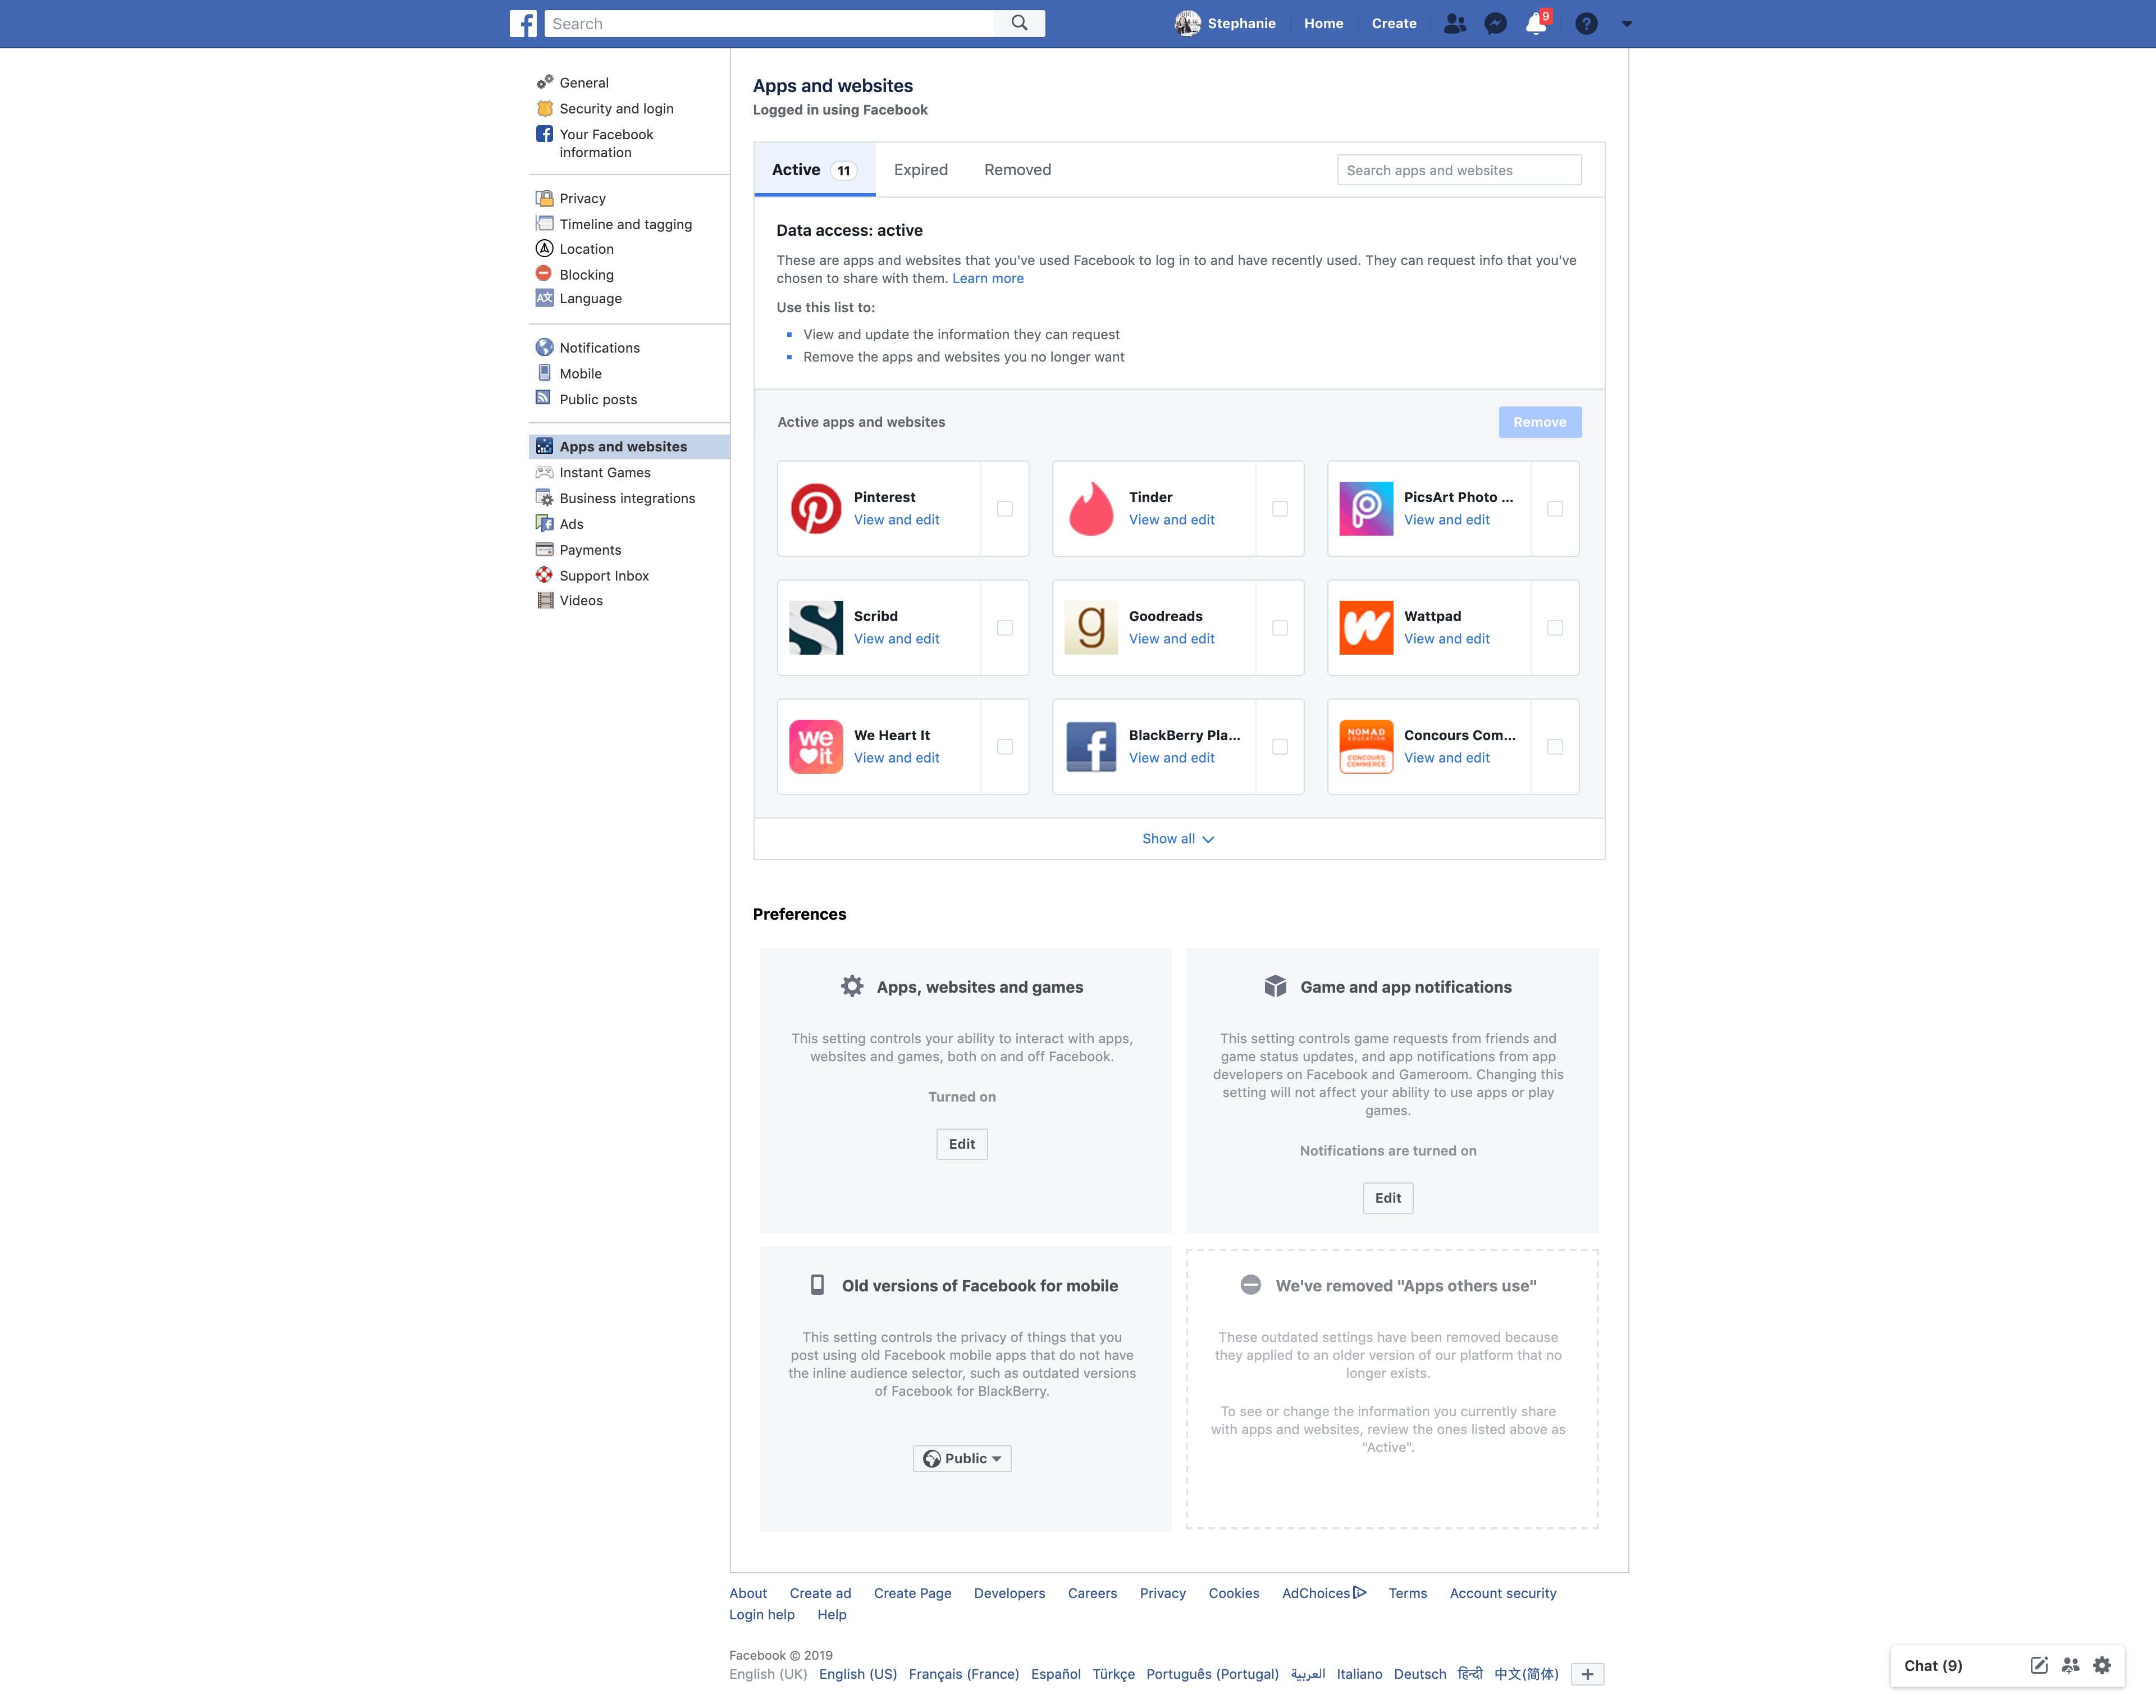 Apps and Websites Settings by Facebook from UIGarage